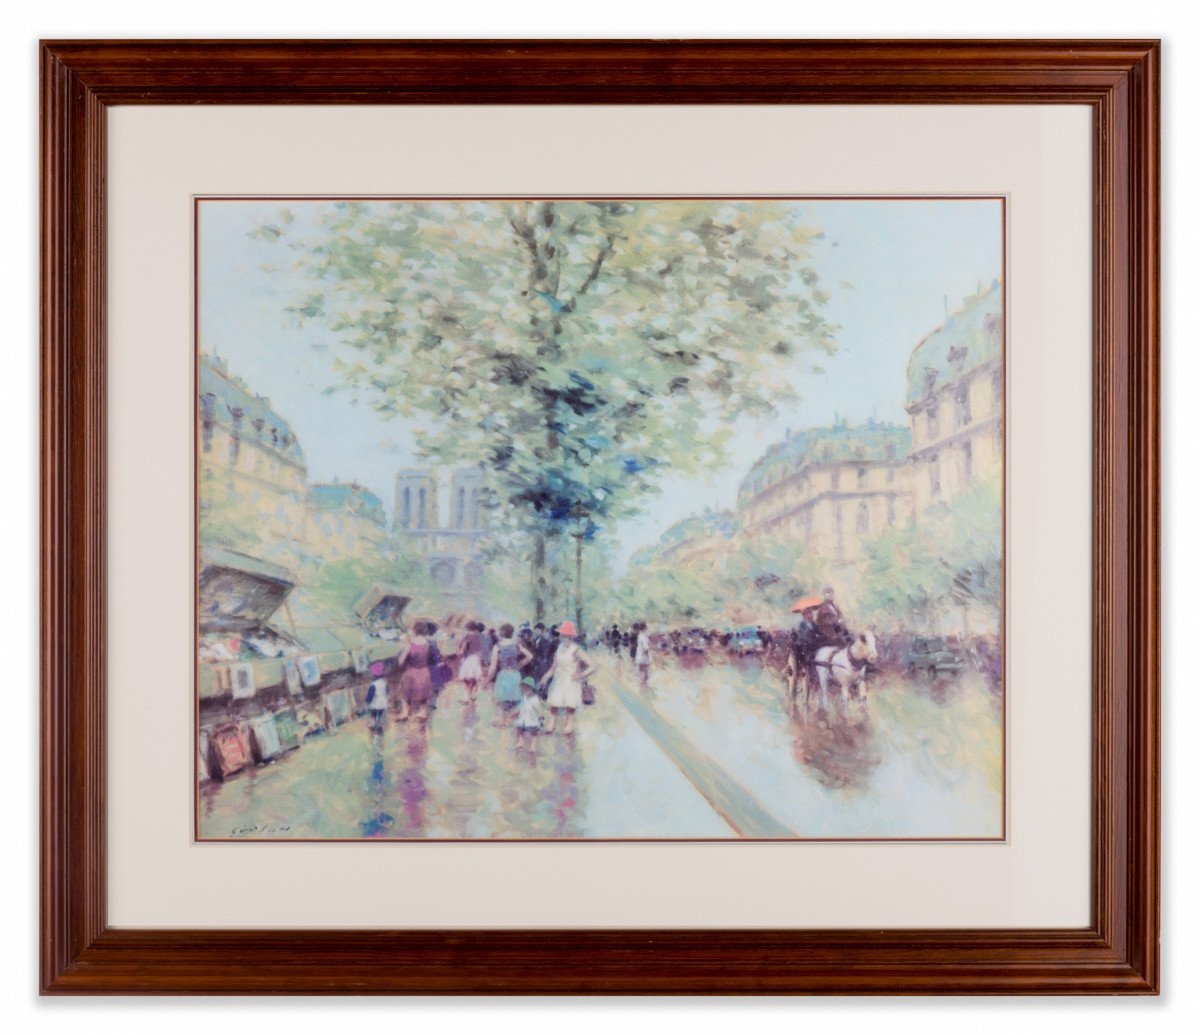 Bouqinistes Paris - by Andre Gisson - Framed Art - Framed Art